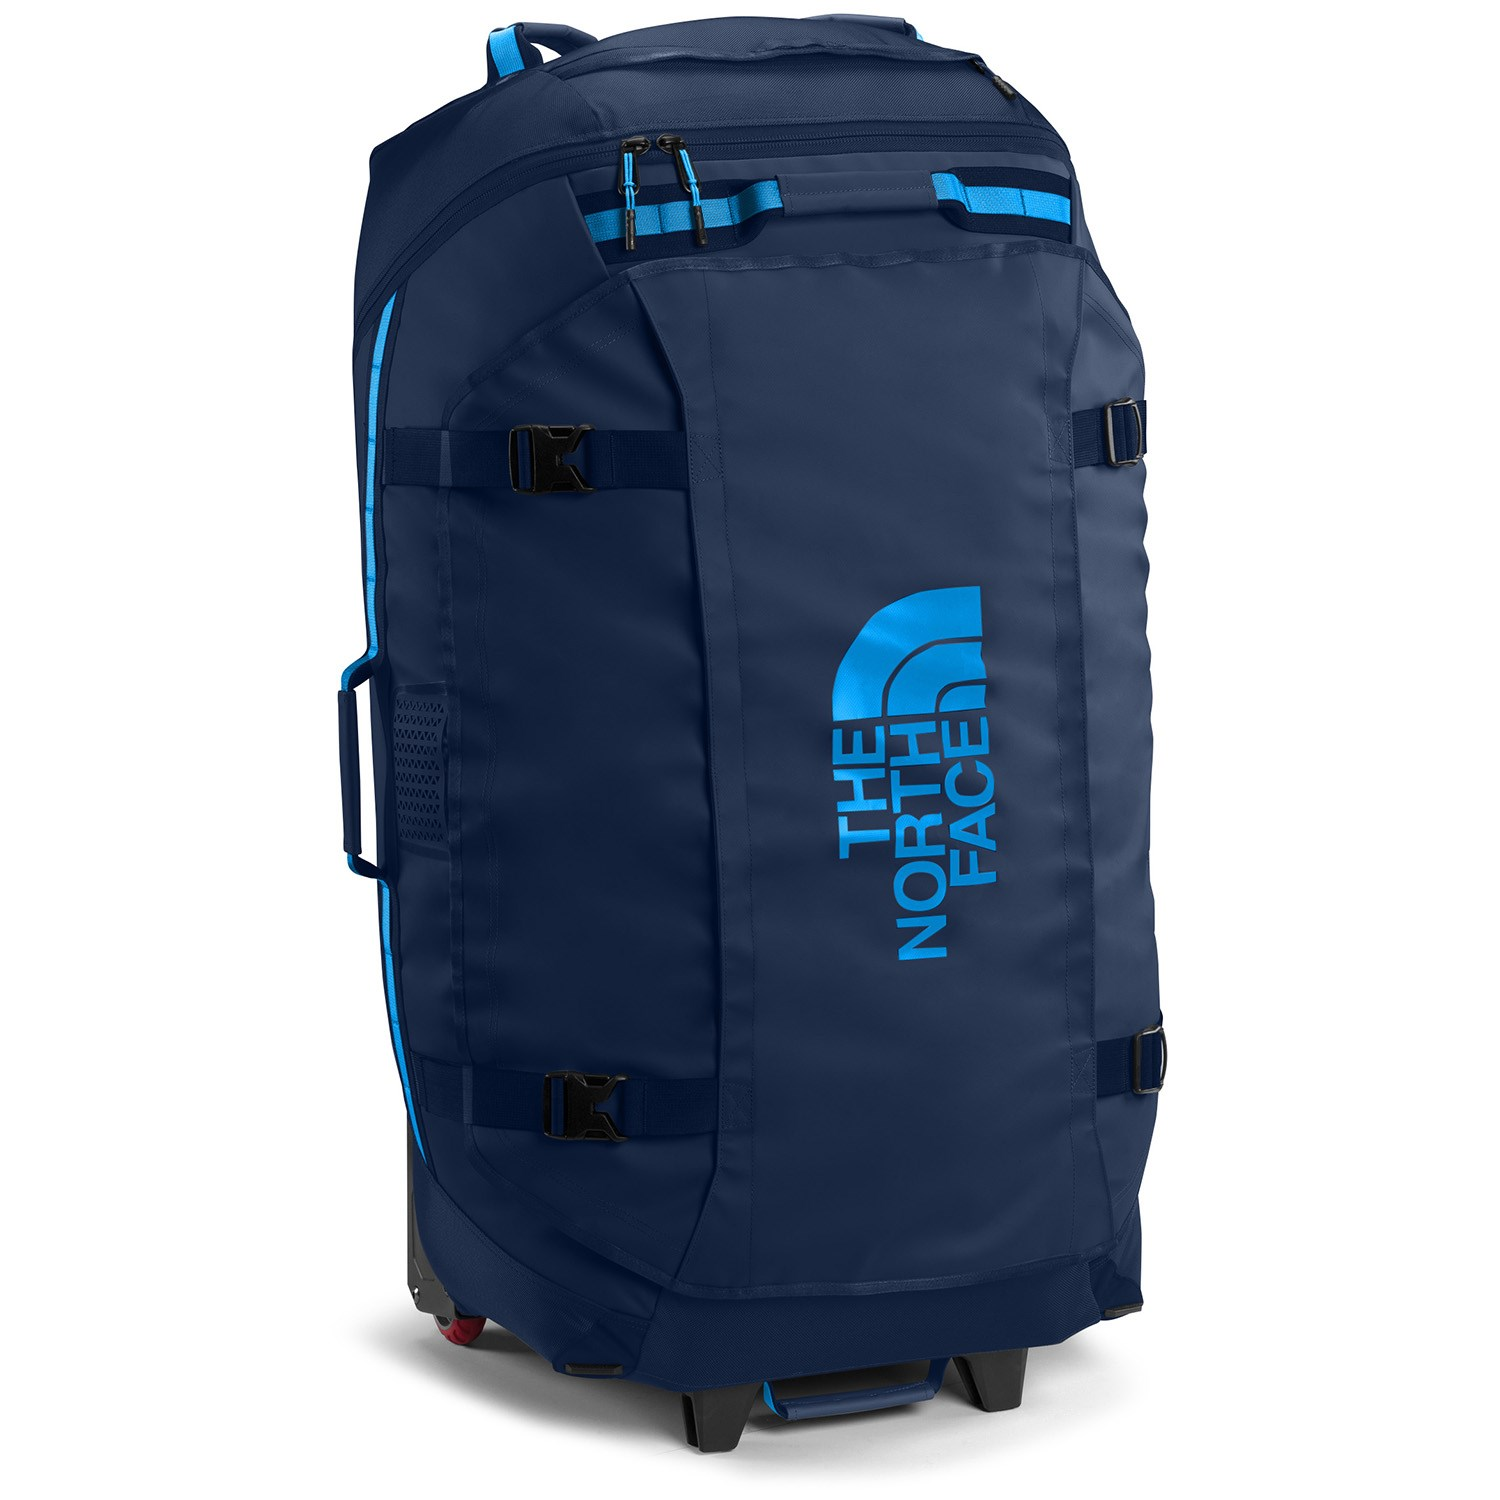 d0370b4a05 The North Face Rolling Thunder Bag - 36